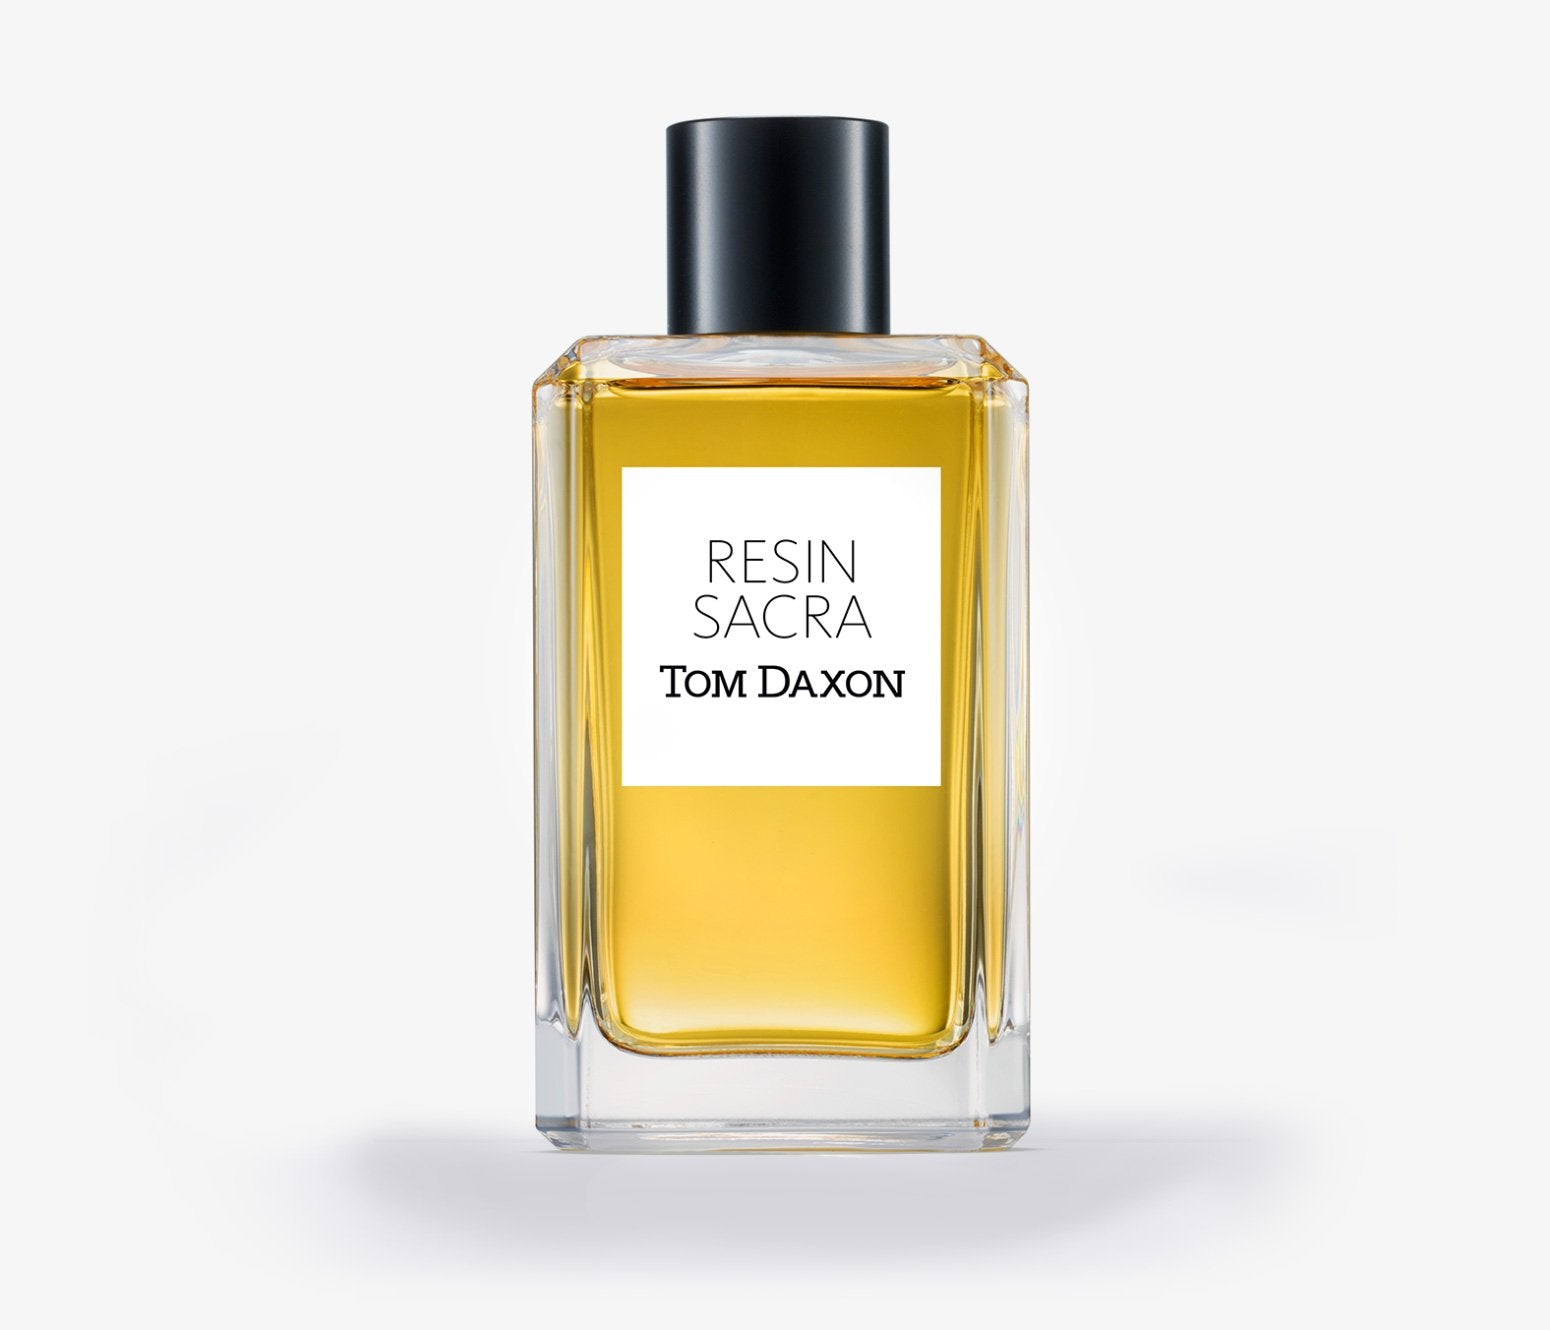 Tom Daxon - Resin Sacra - 100ml - BWY001 - Product Image - Fragrance - Les Senteurs